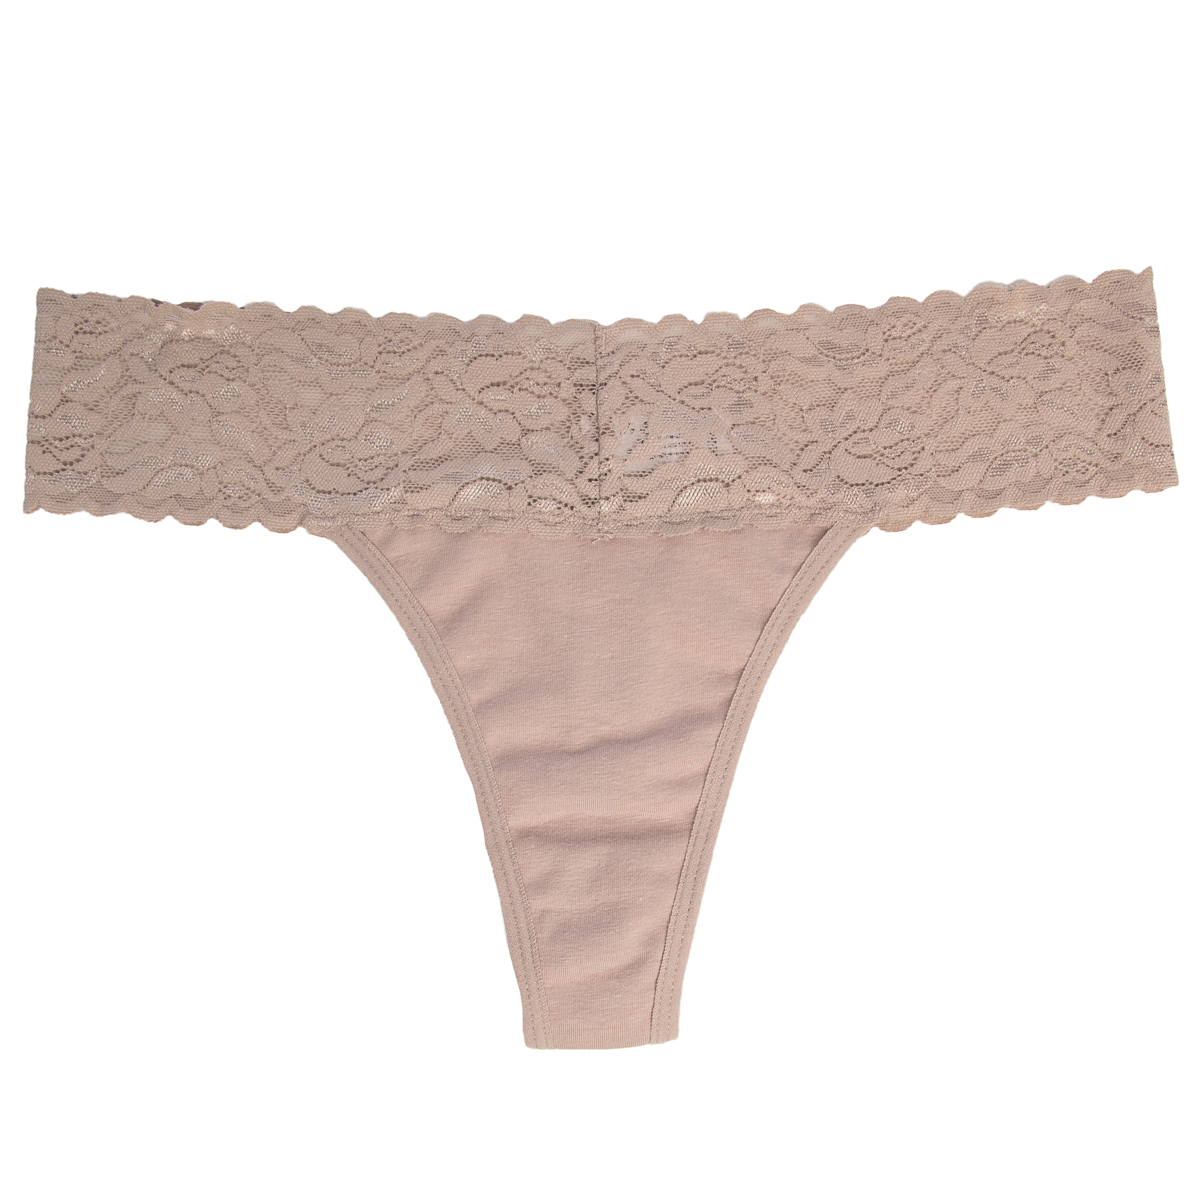 6-Pack-Cotton-Lace-Thong-Underwear-For-Women-Soft-Sexy-Lingerie-Panties-Thongs thumbnail 34